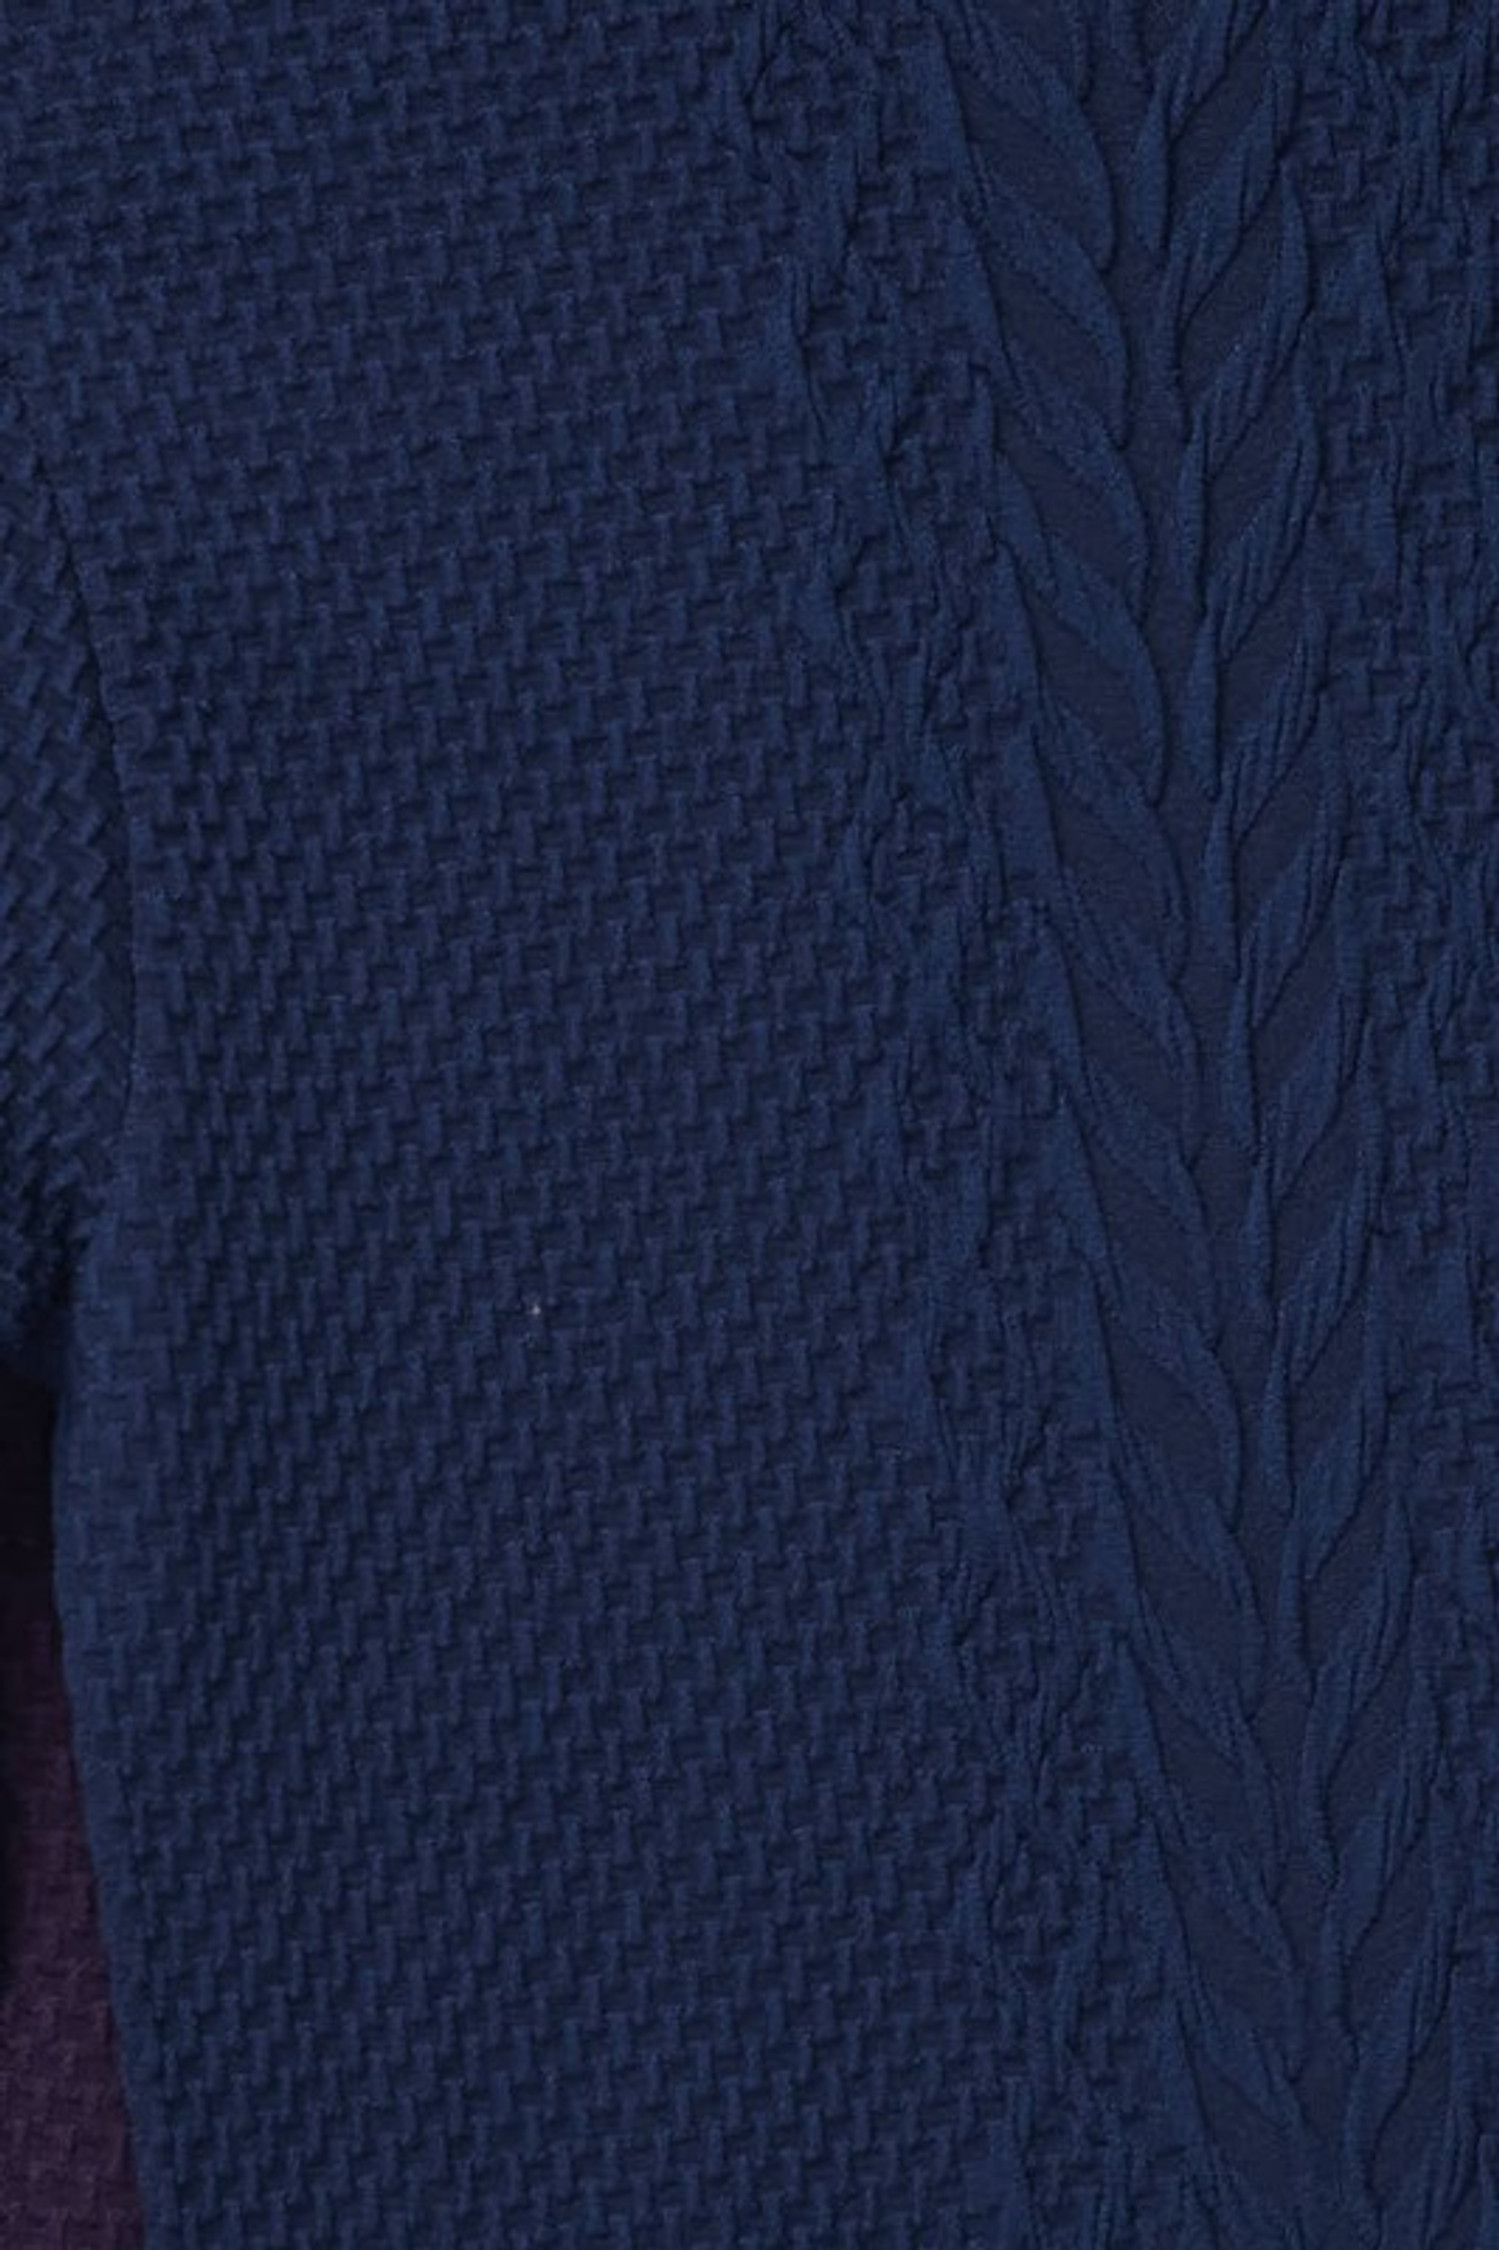 Close-up swatch of Navy Seamless Fitted Mock Neck Cable Knit Top